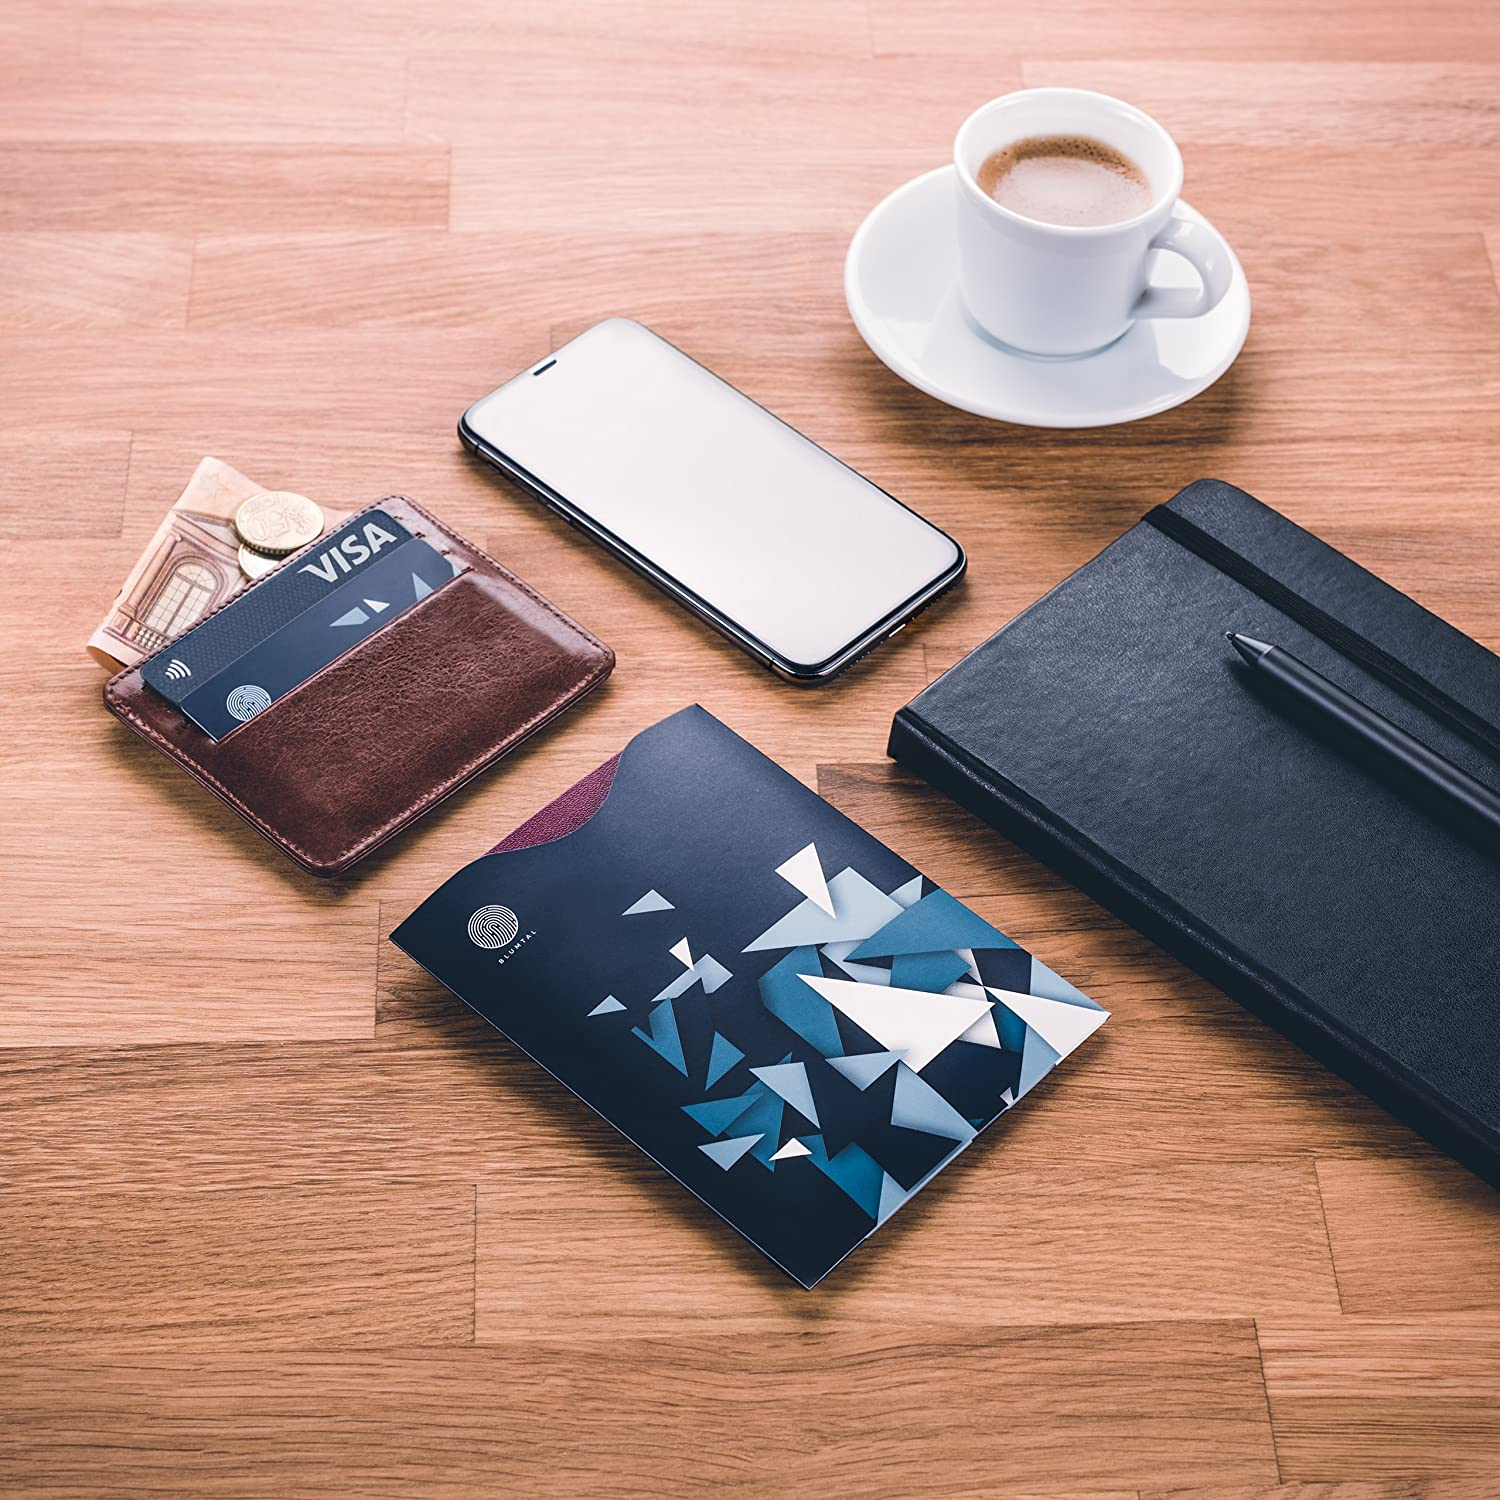 In Stylish Design Blumtal 2 RFID Card Protectors and 2 Additional Passport Covers Anti Theft Credit Card and Passport Protector